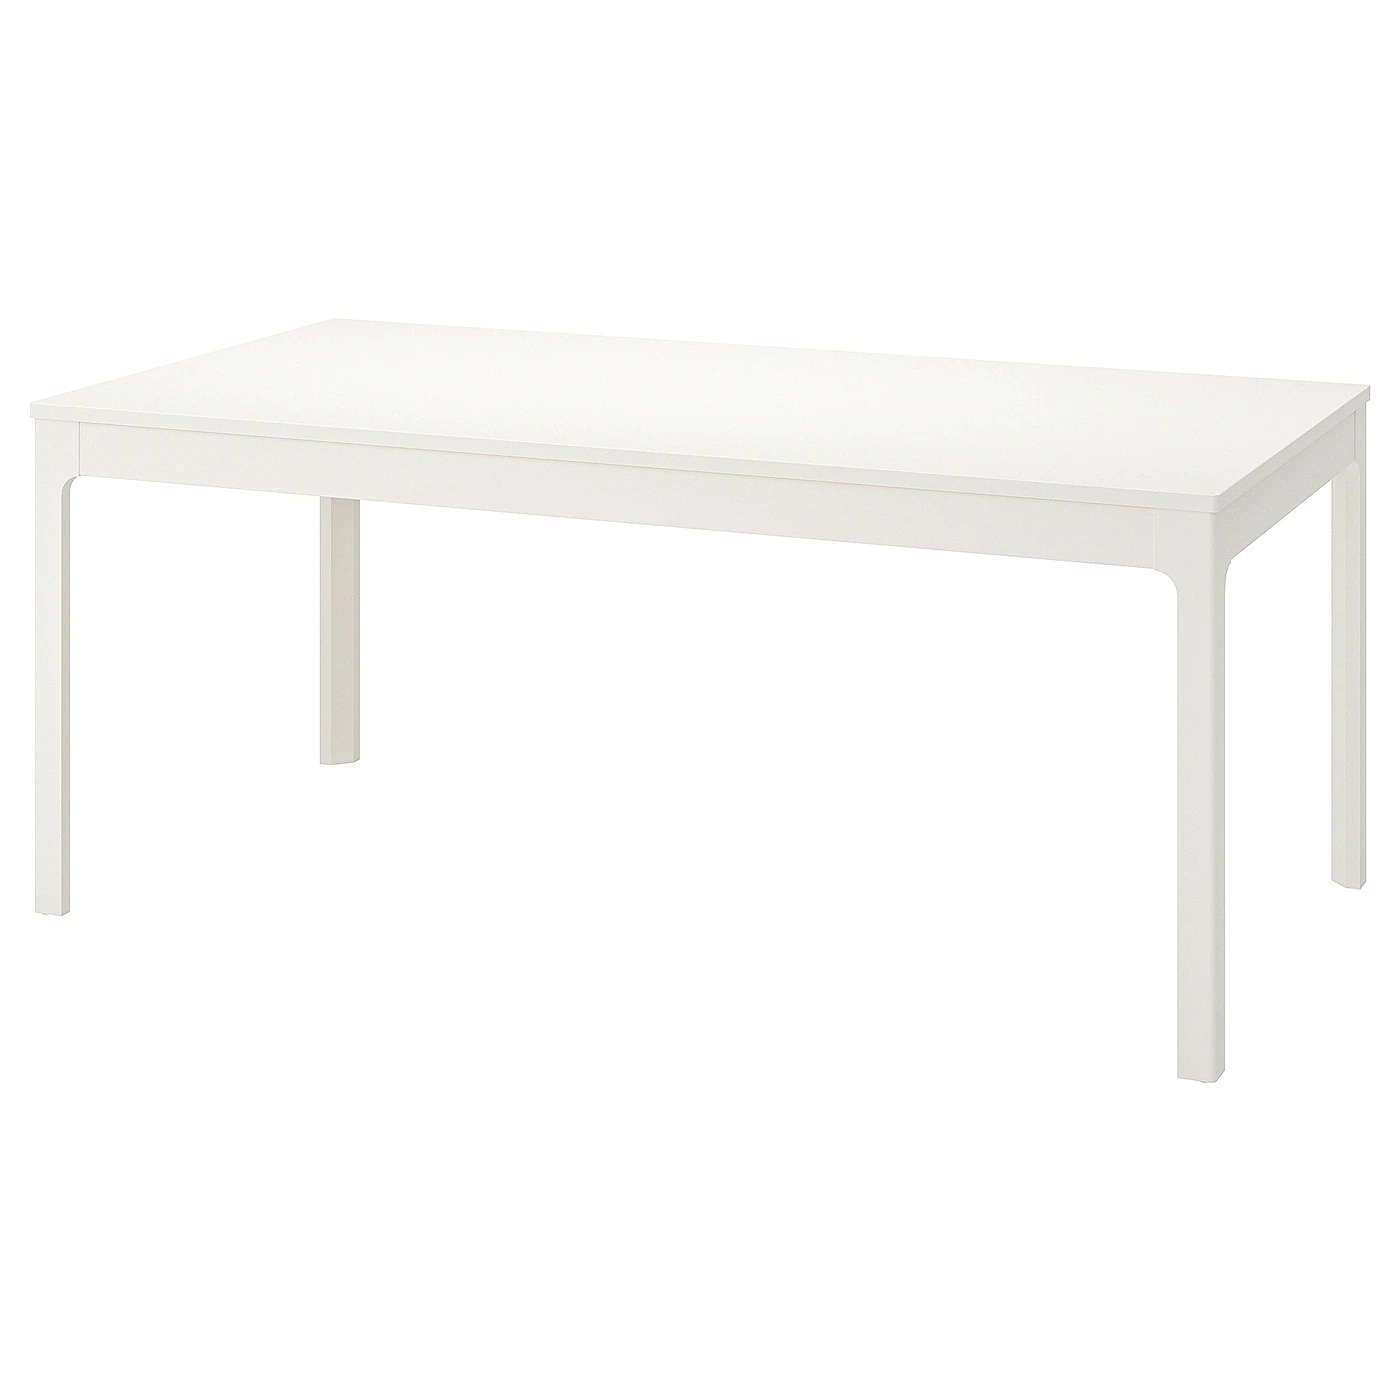 tables 10 personnes ikea